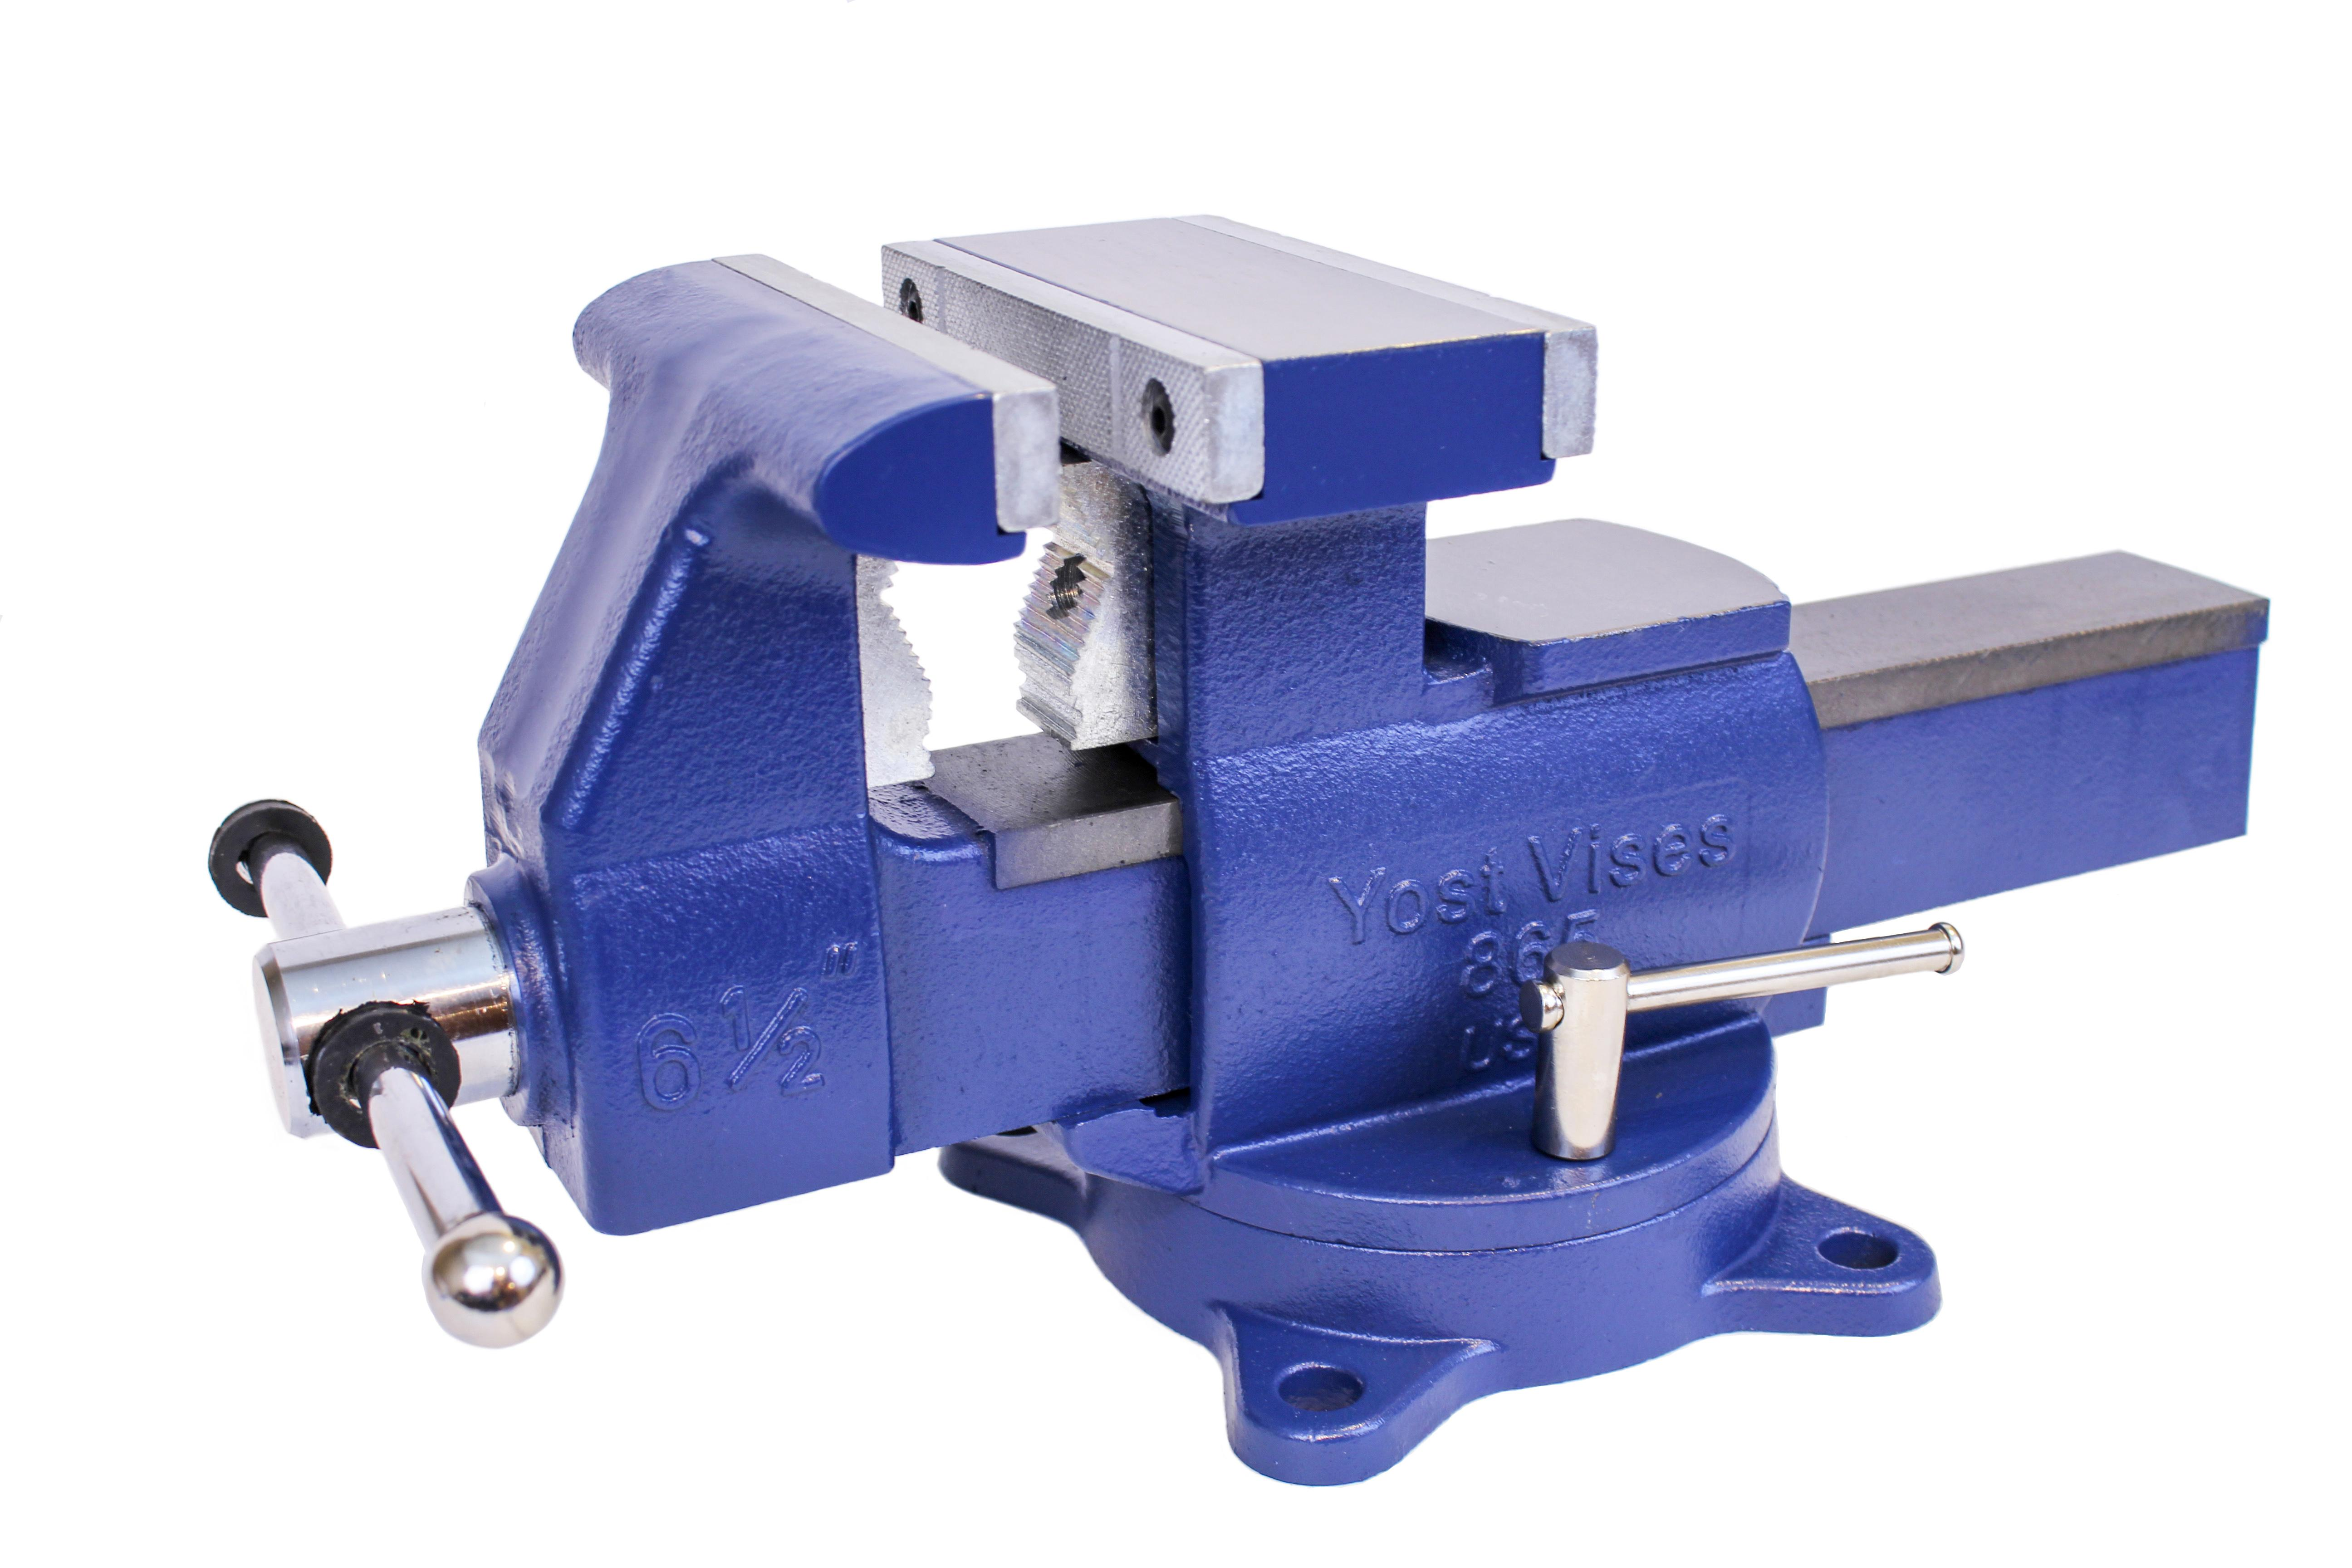 Yost Vises 865 Di 6 5 Quot Heavy Duty Reversible Bench Vise Made In Usa Bench Clamps Amazon Com